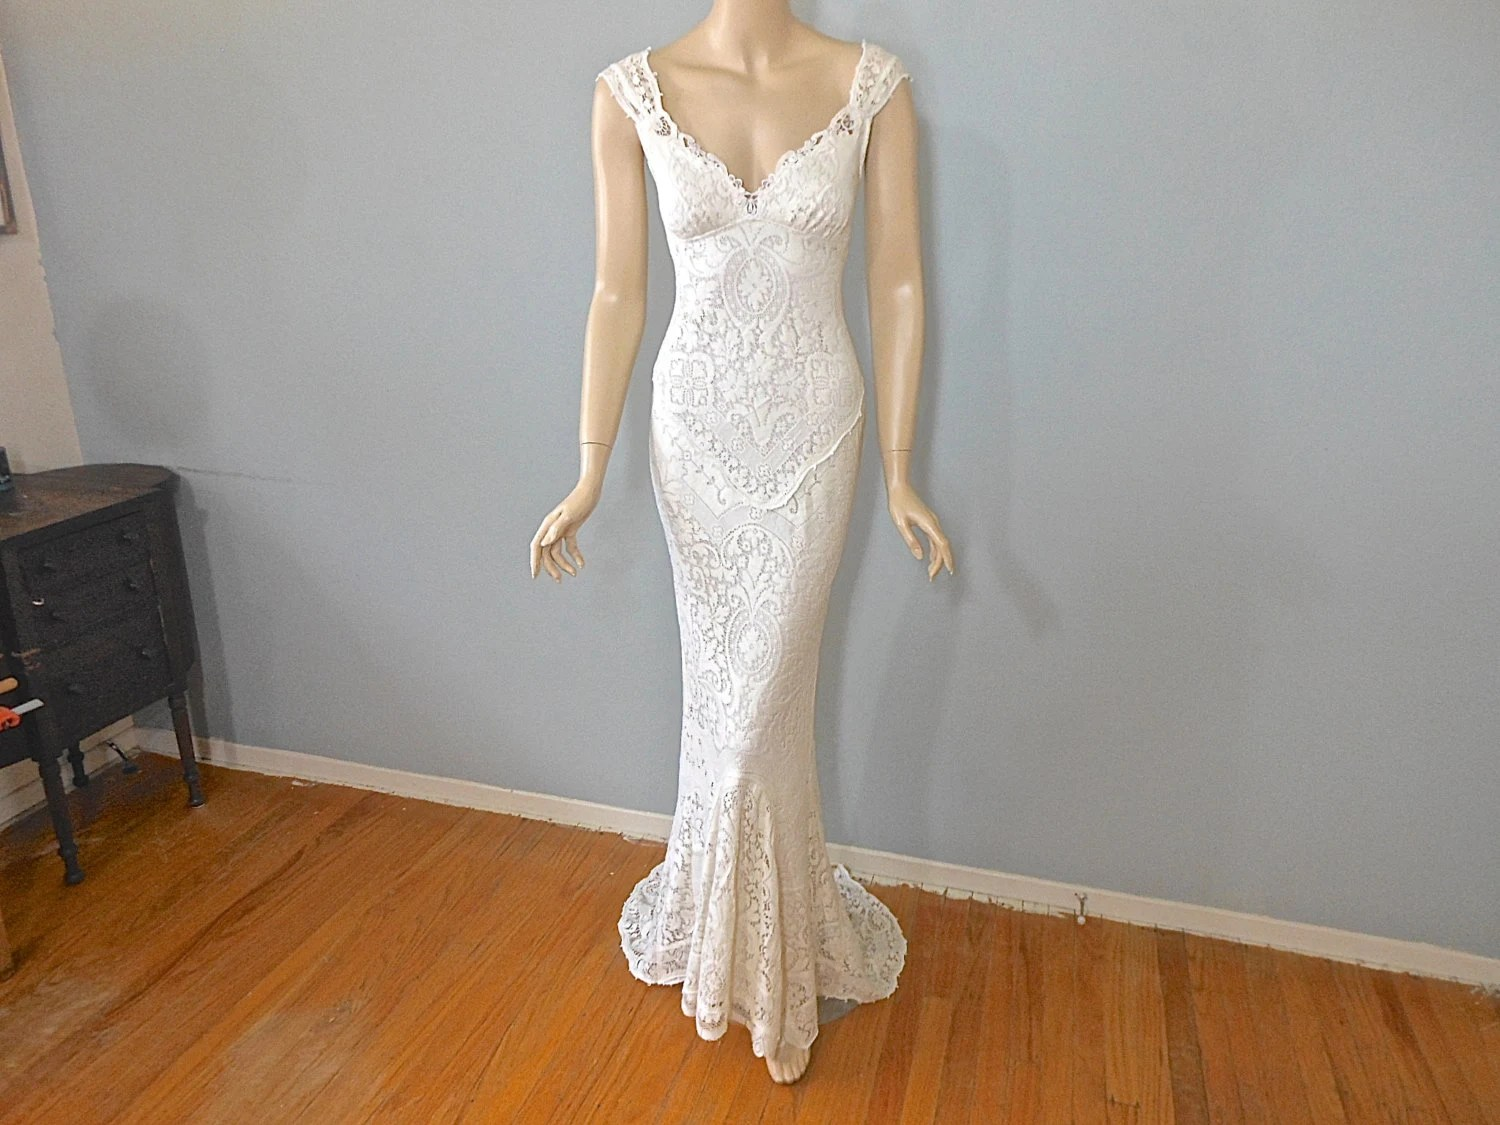 MERMAID Lace Wedding Dress Vintage Inspired Boho Wedding Dress